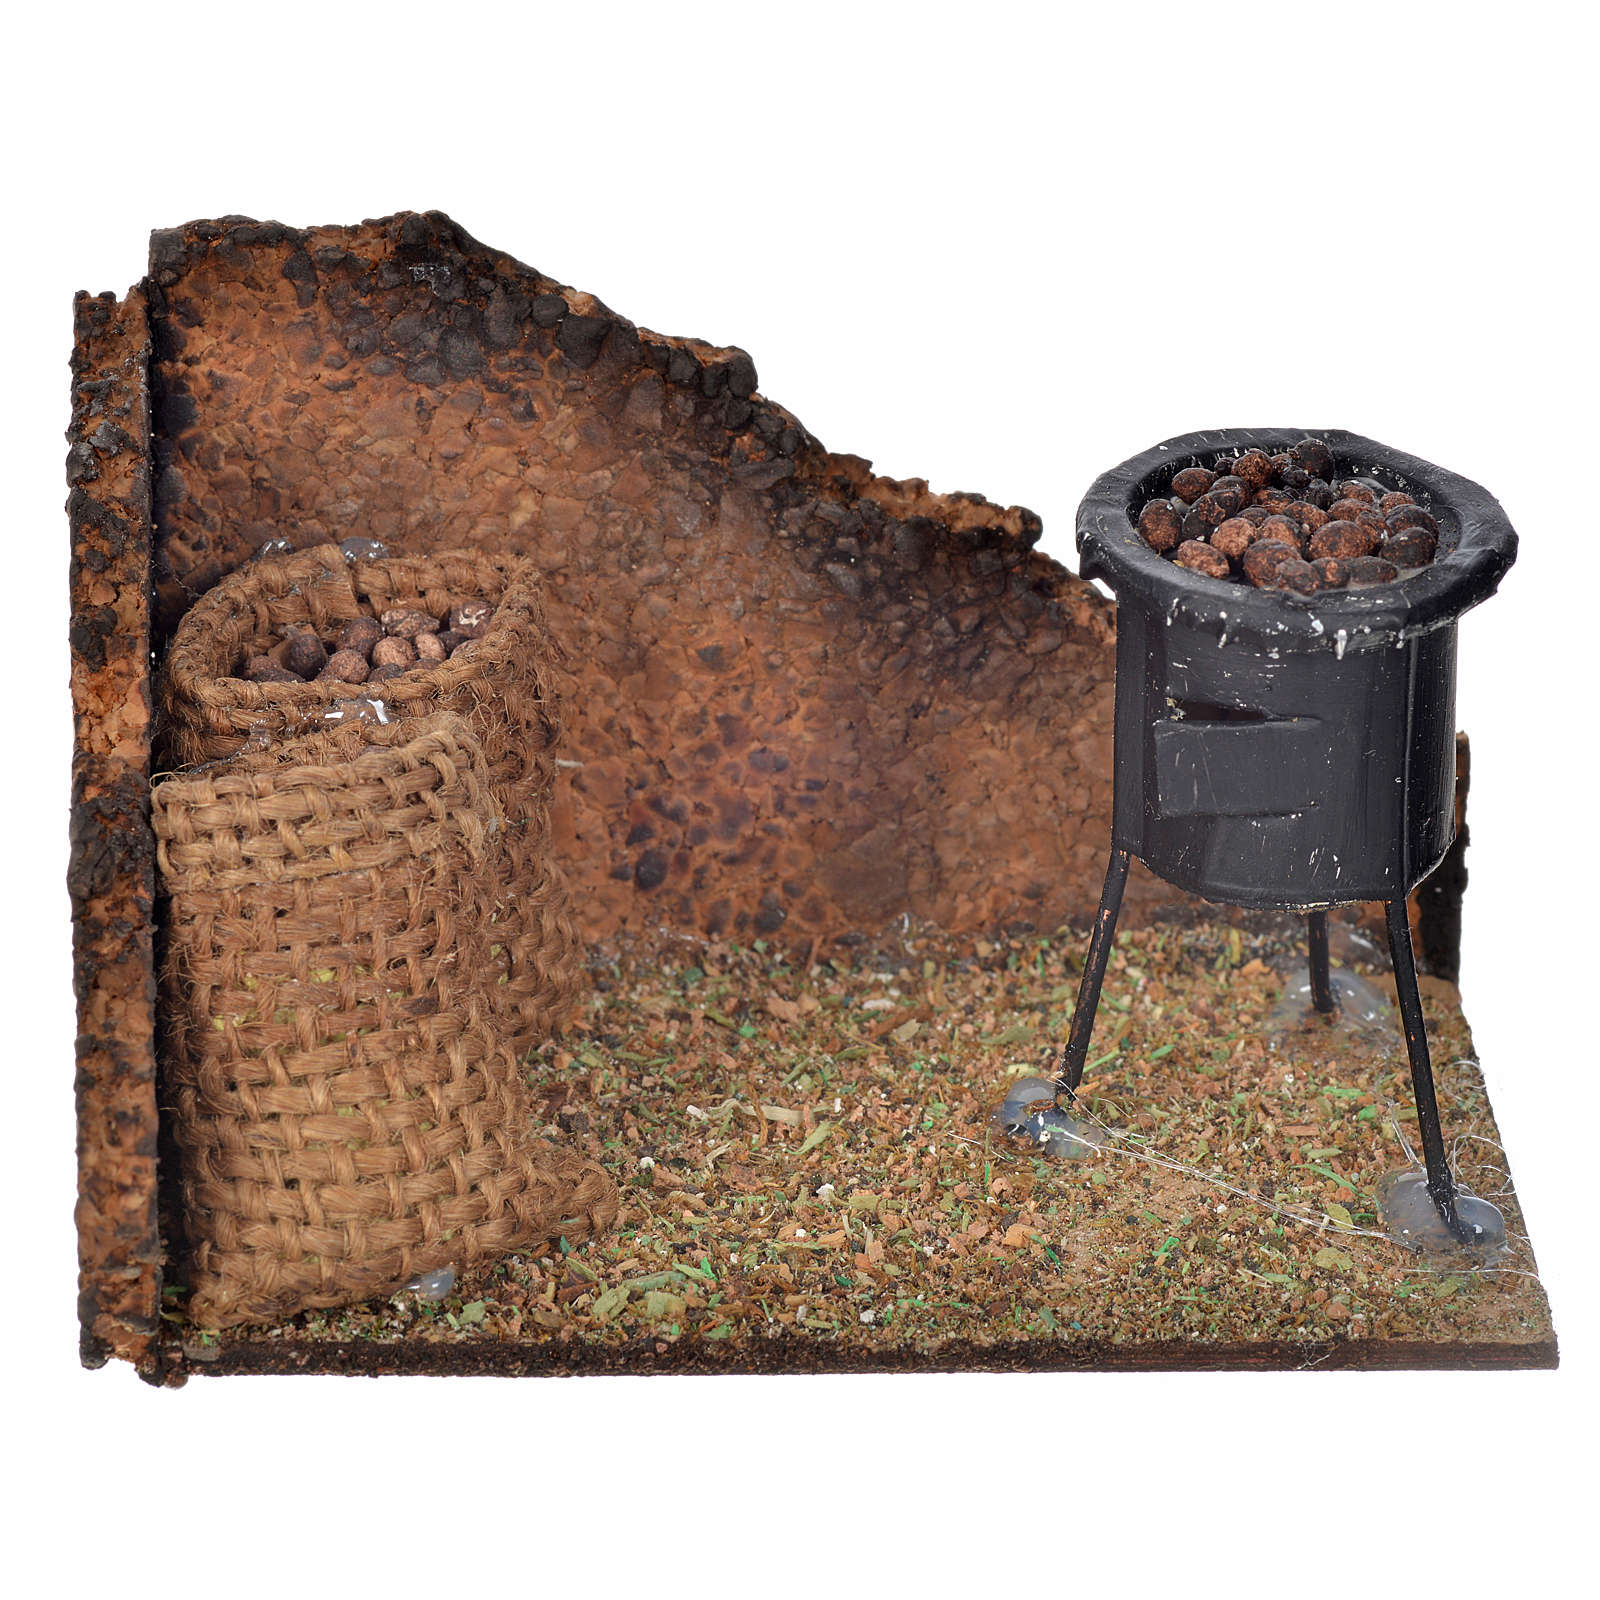 Neapolitan Nativity scene, wood-burning oven with chestnuts 6x9, 4